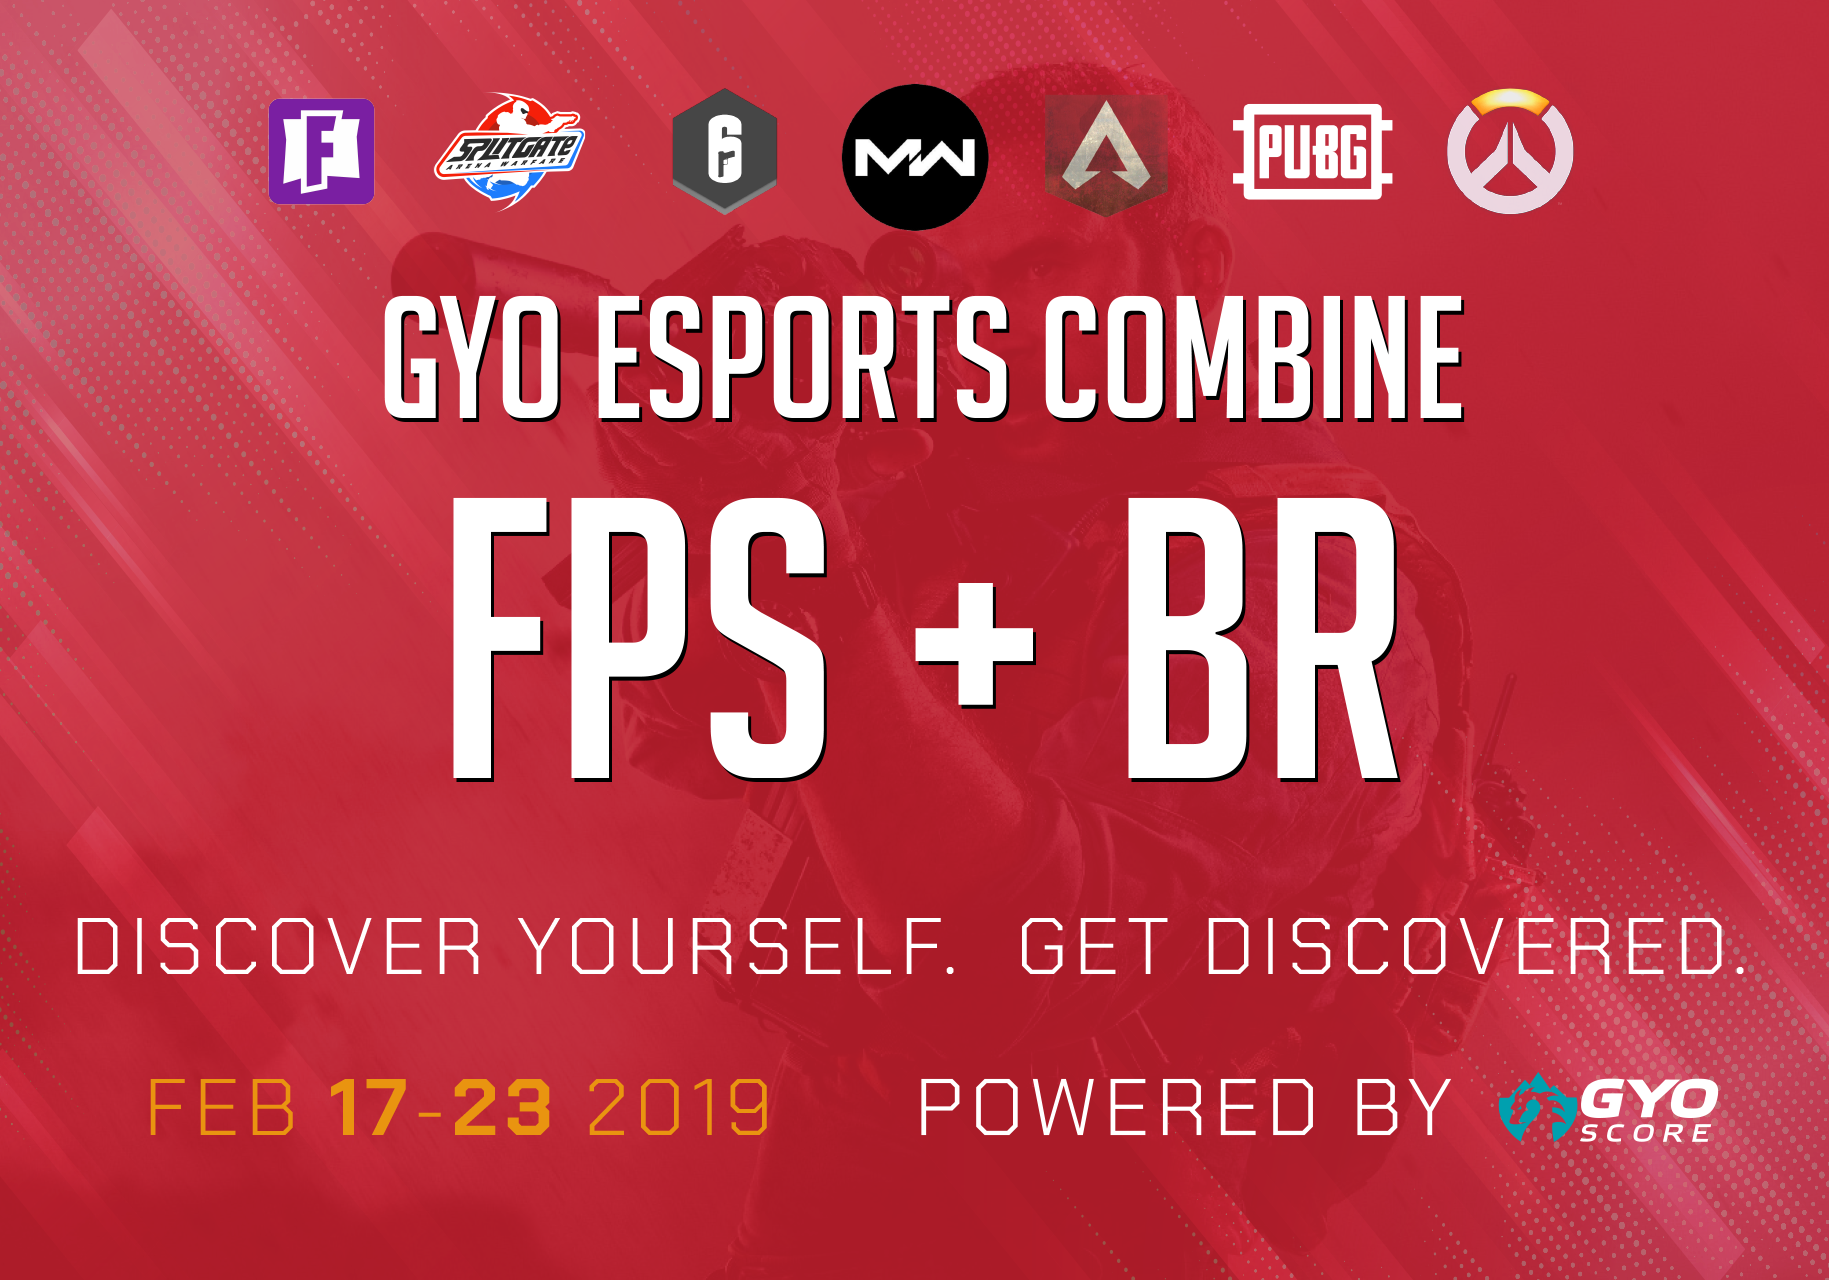 FPS + Battle Royale Combine - February